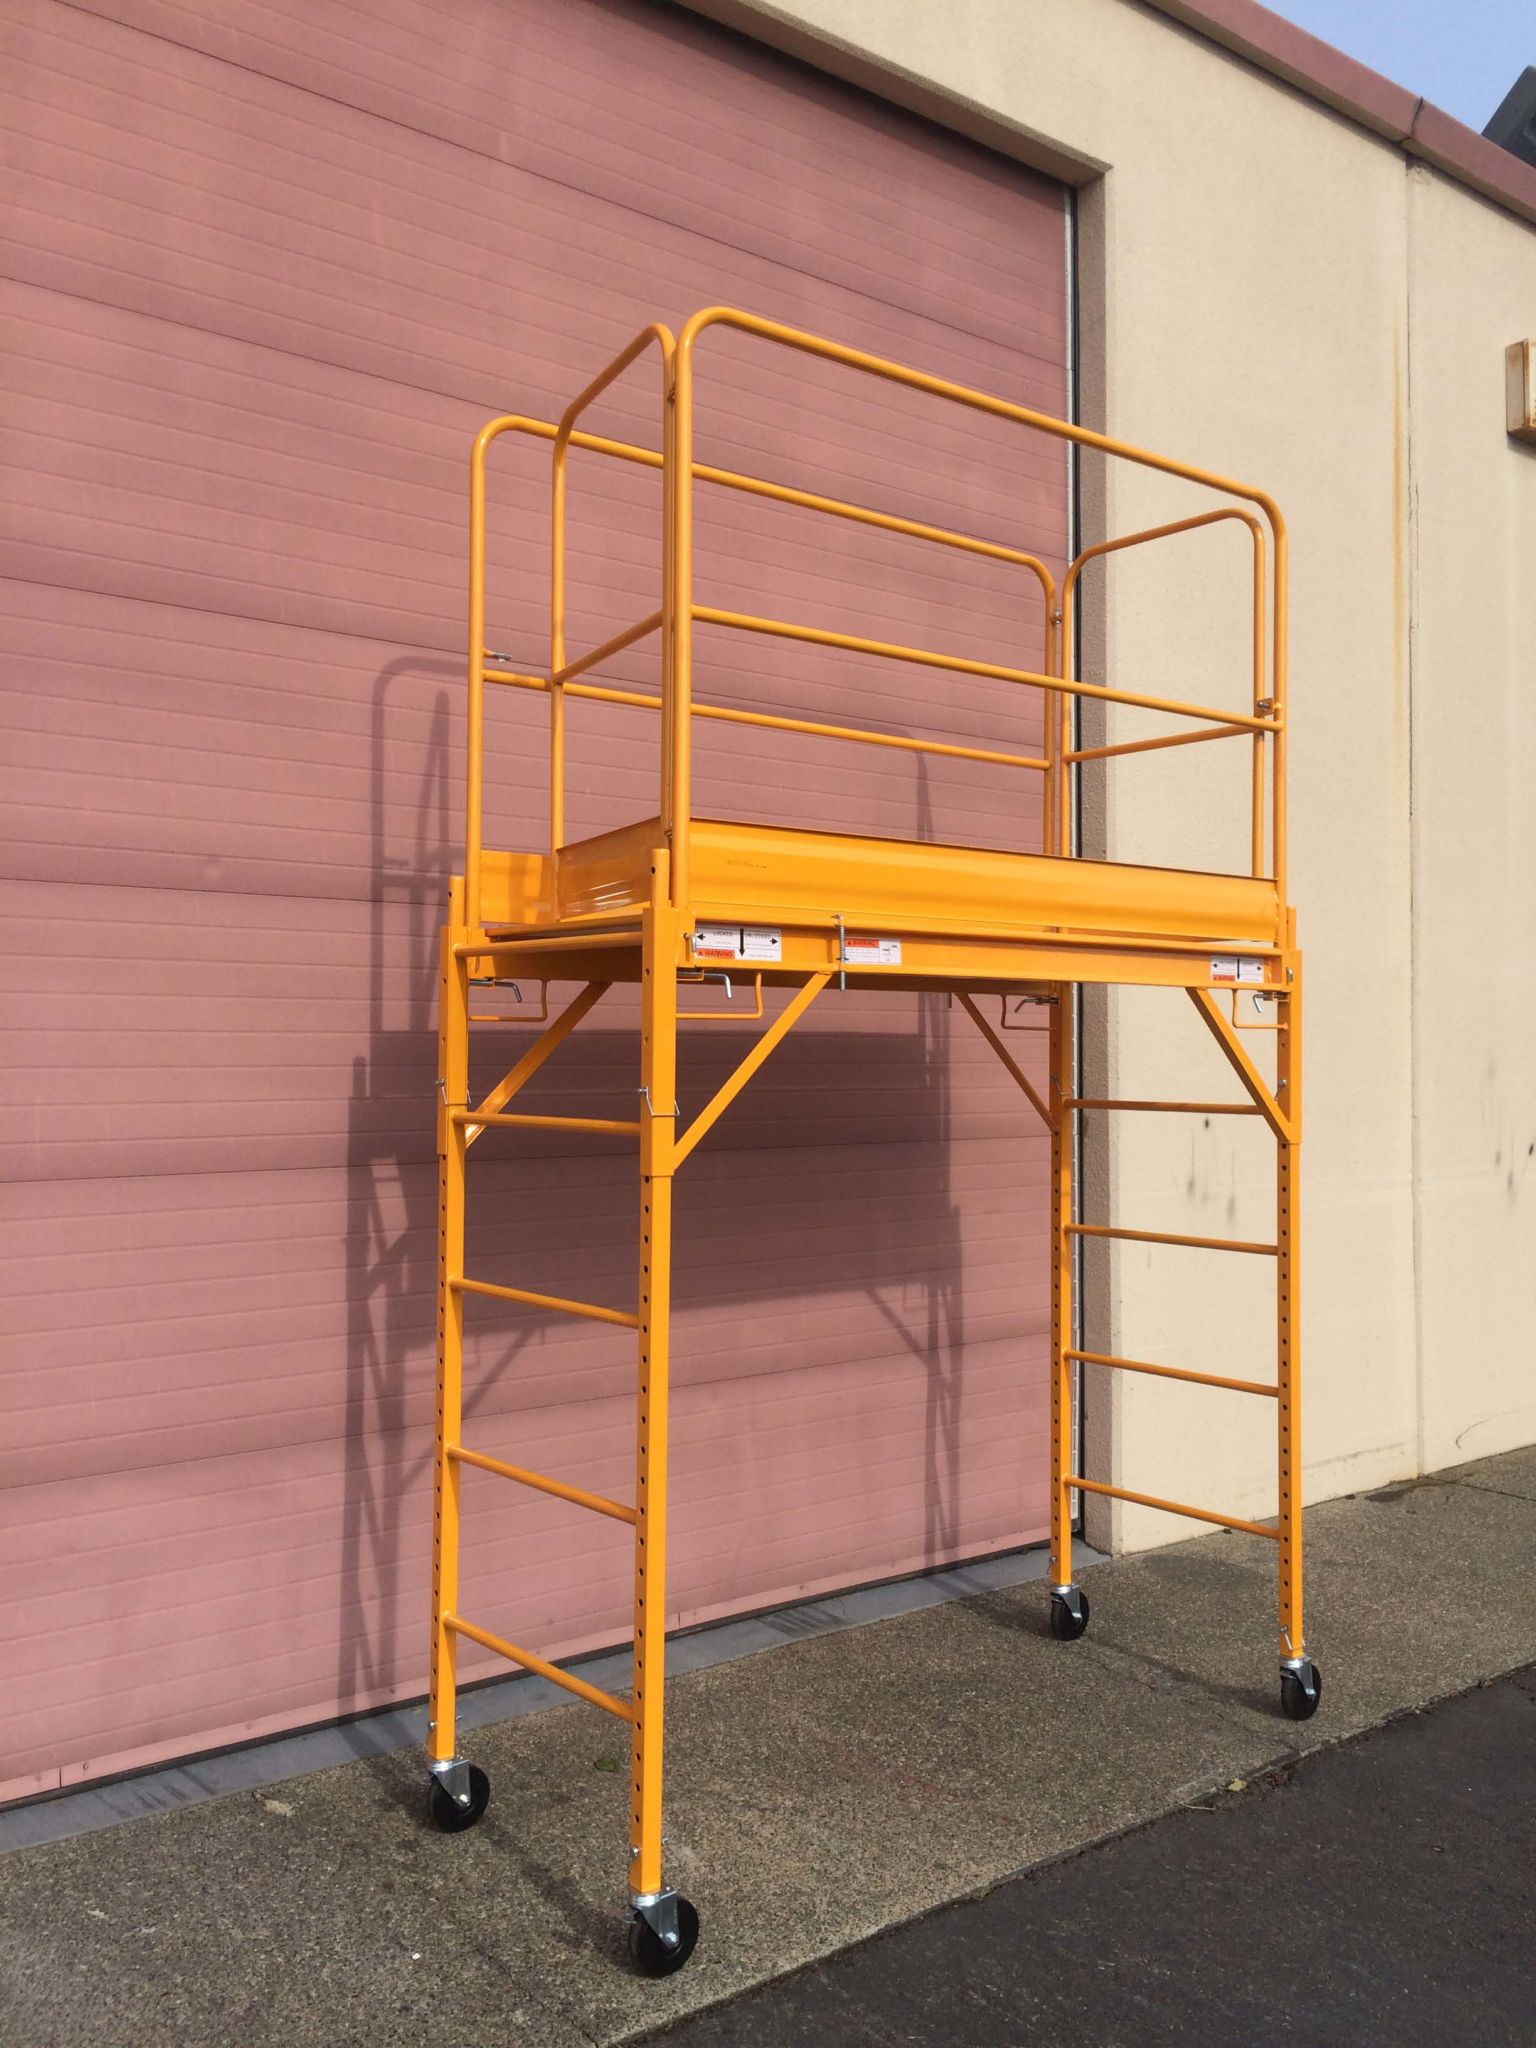 access of upright interior scaffolding view provider systems instant image standard bespoke